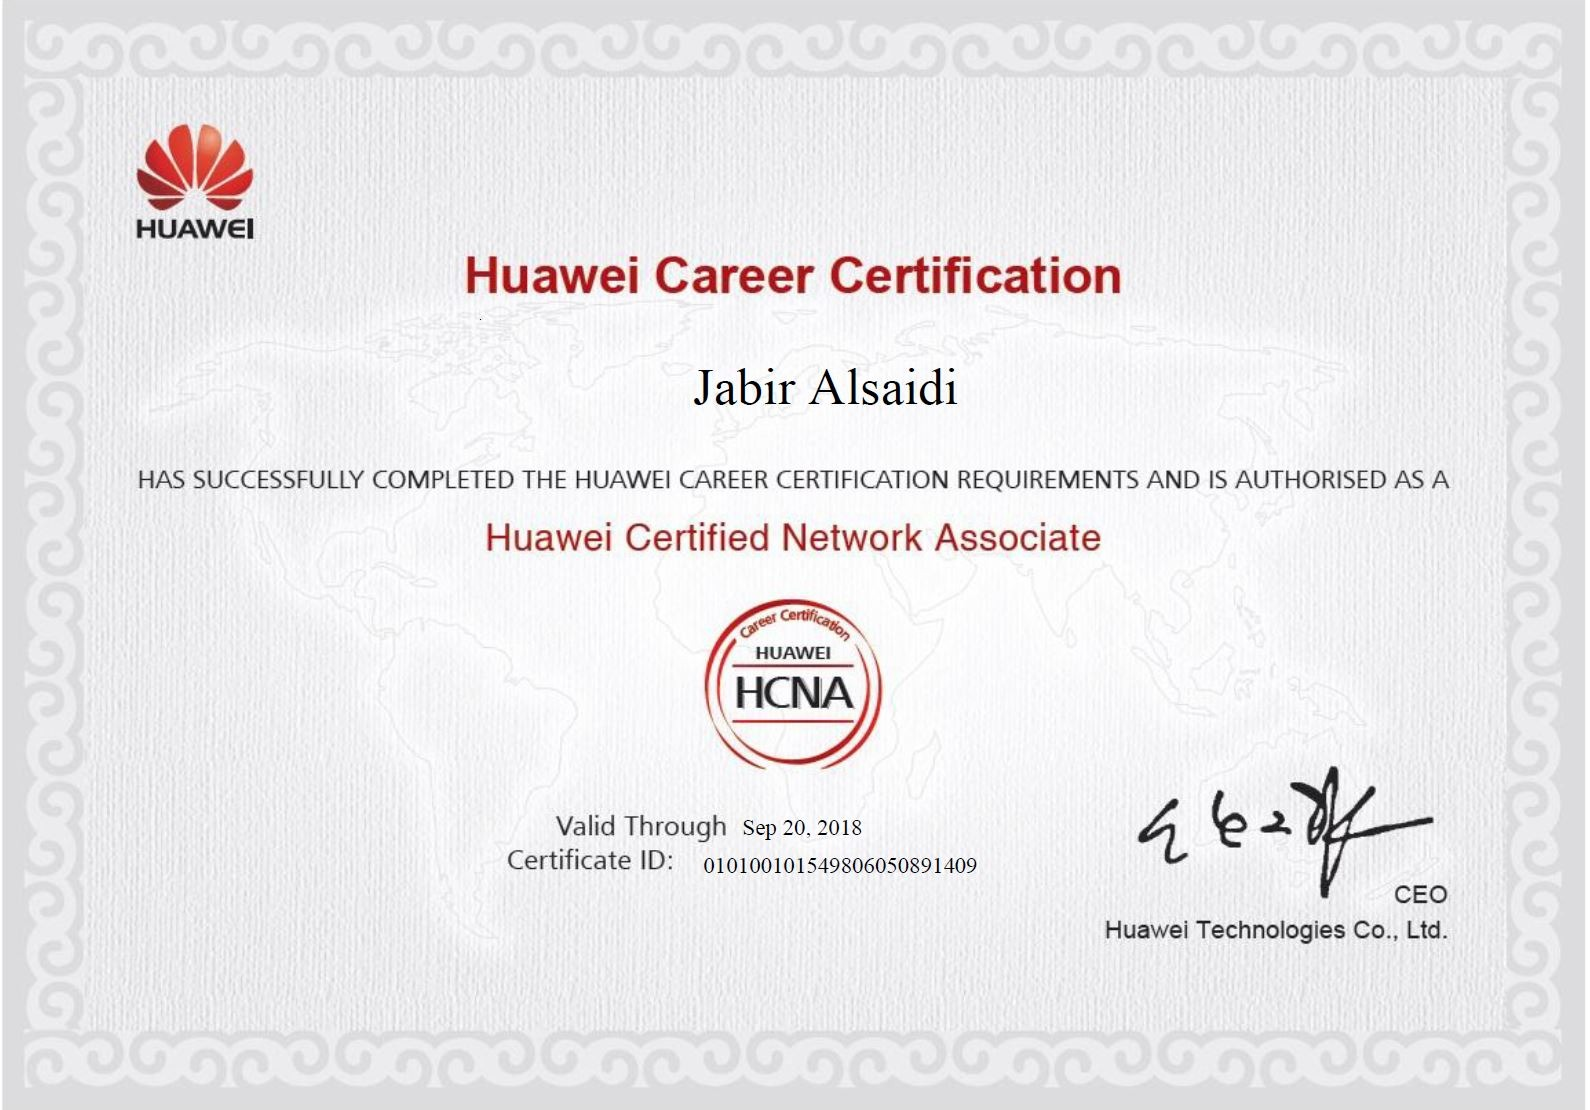 huawei certified network engineer sample resume huawei certified network engineer sample resume - Huawei Certified Network Engineer Sample Resume